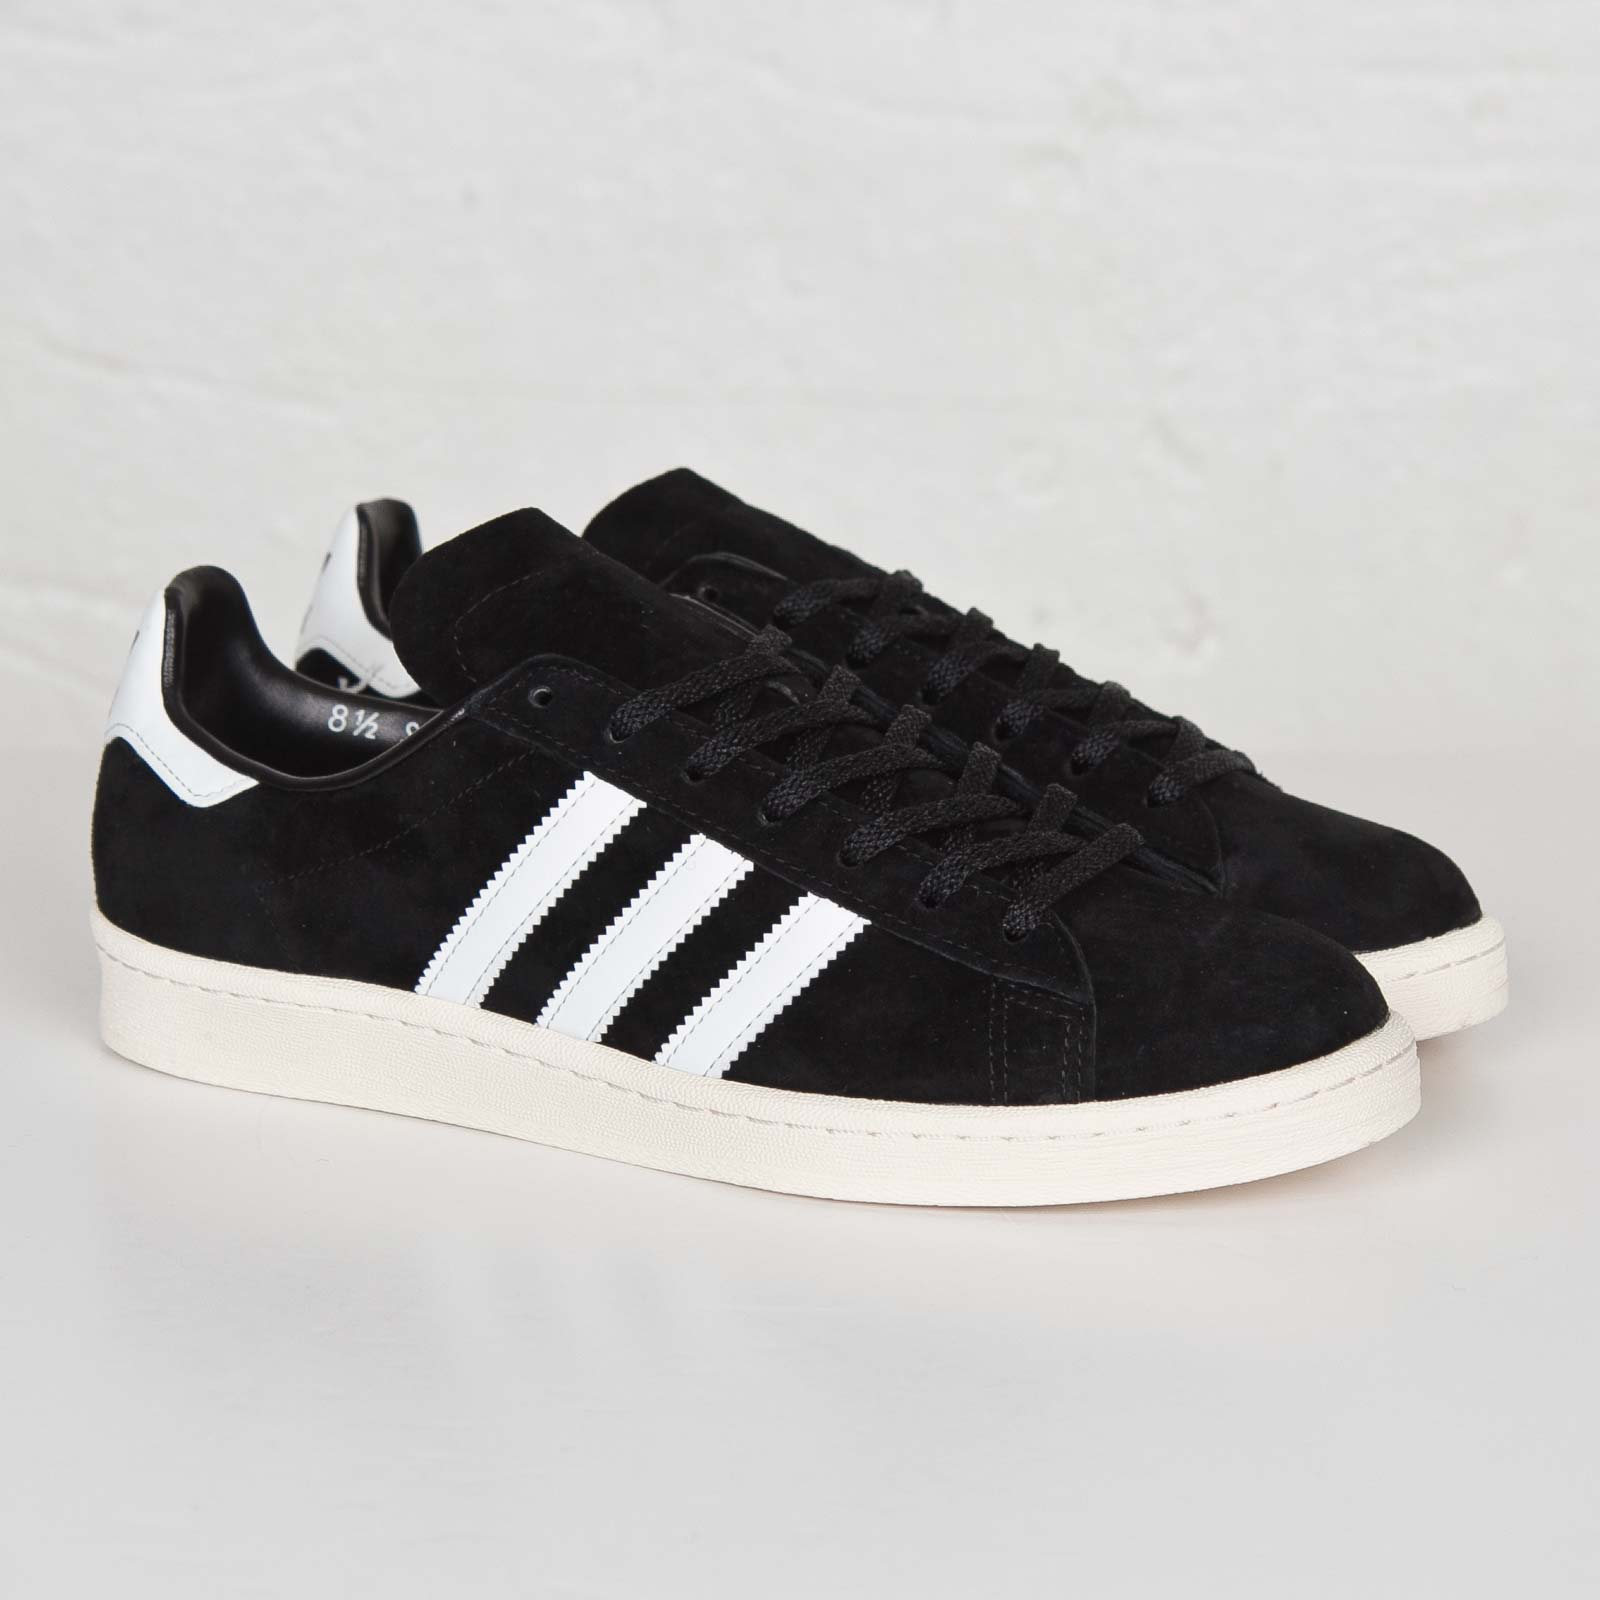 reputable site 71562 db0cf adidas Campus 80s Japan Pack Vintage